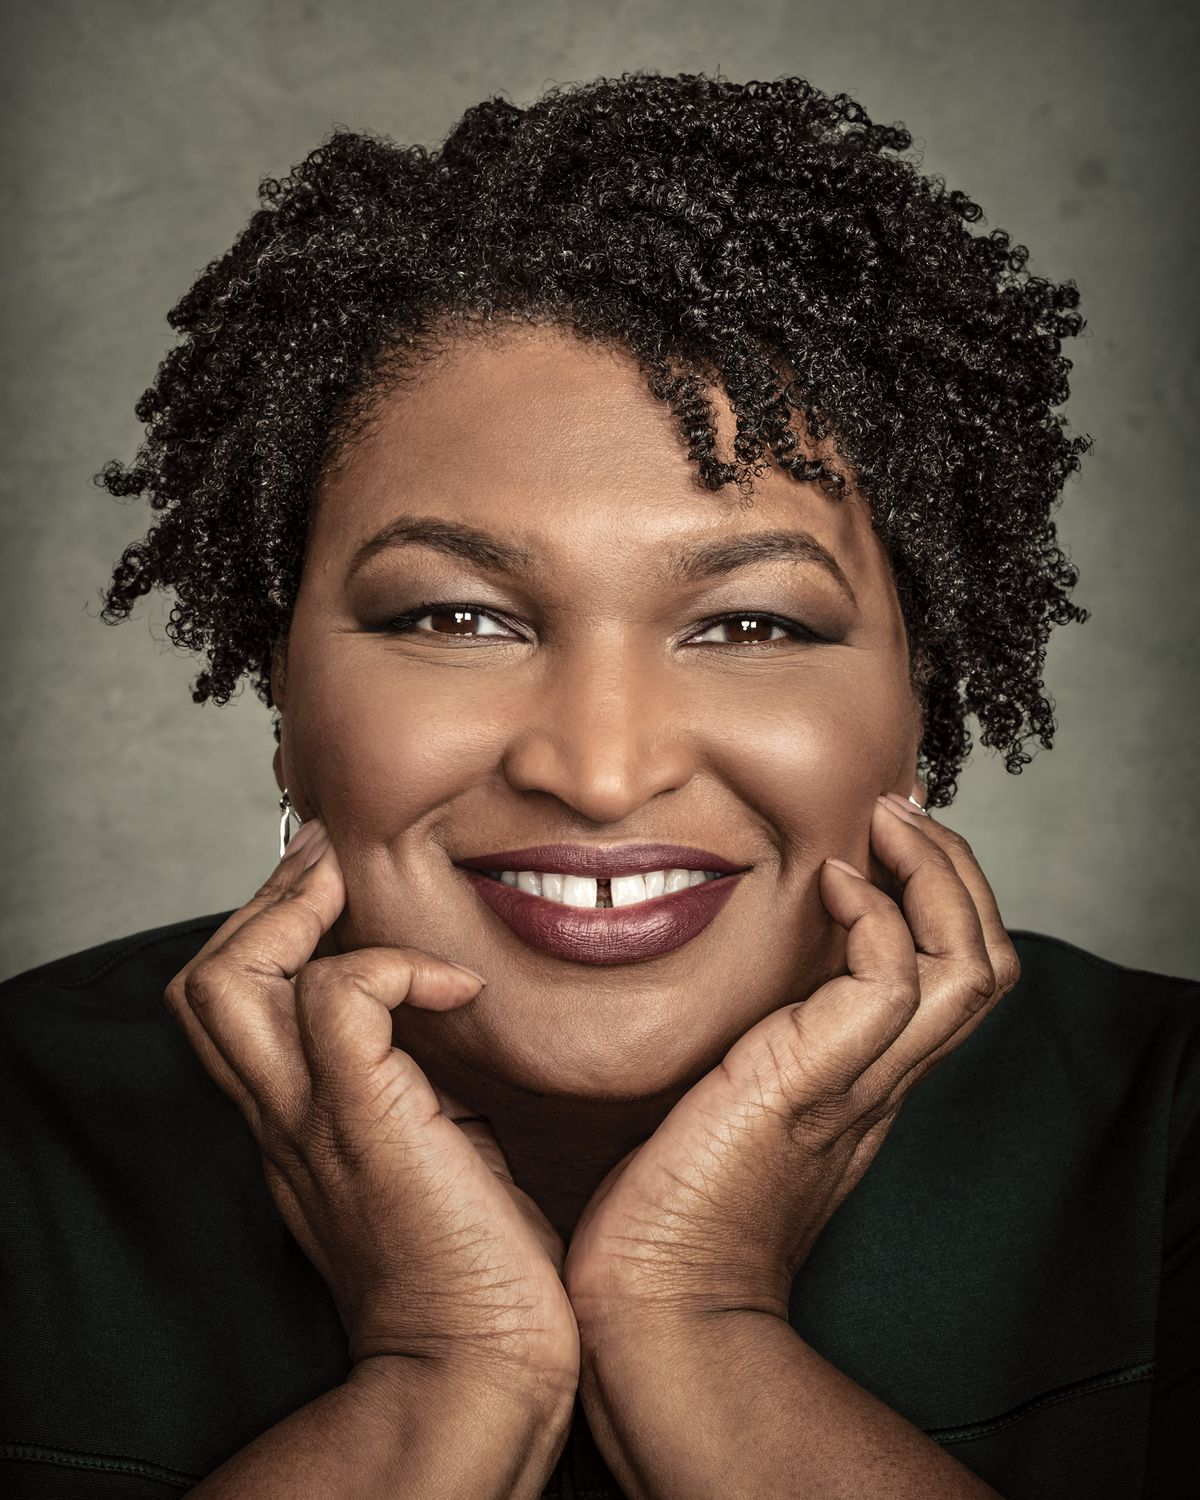 Stacey Abrams Romance Novels Will Re-debut